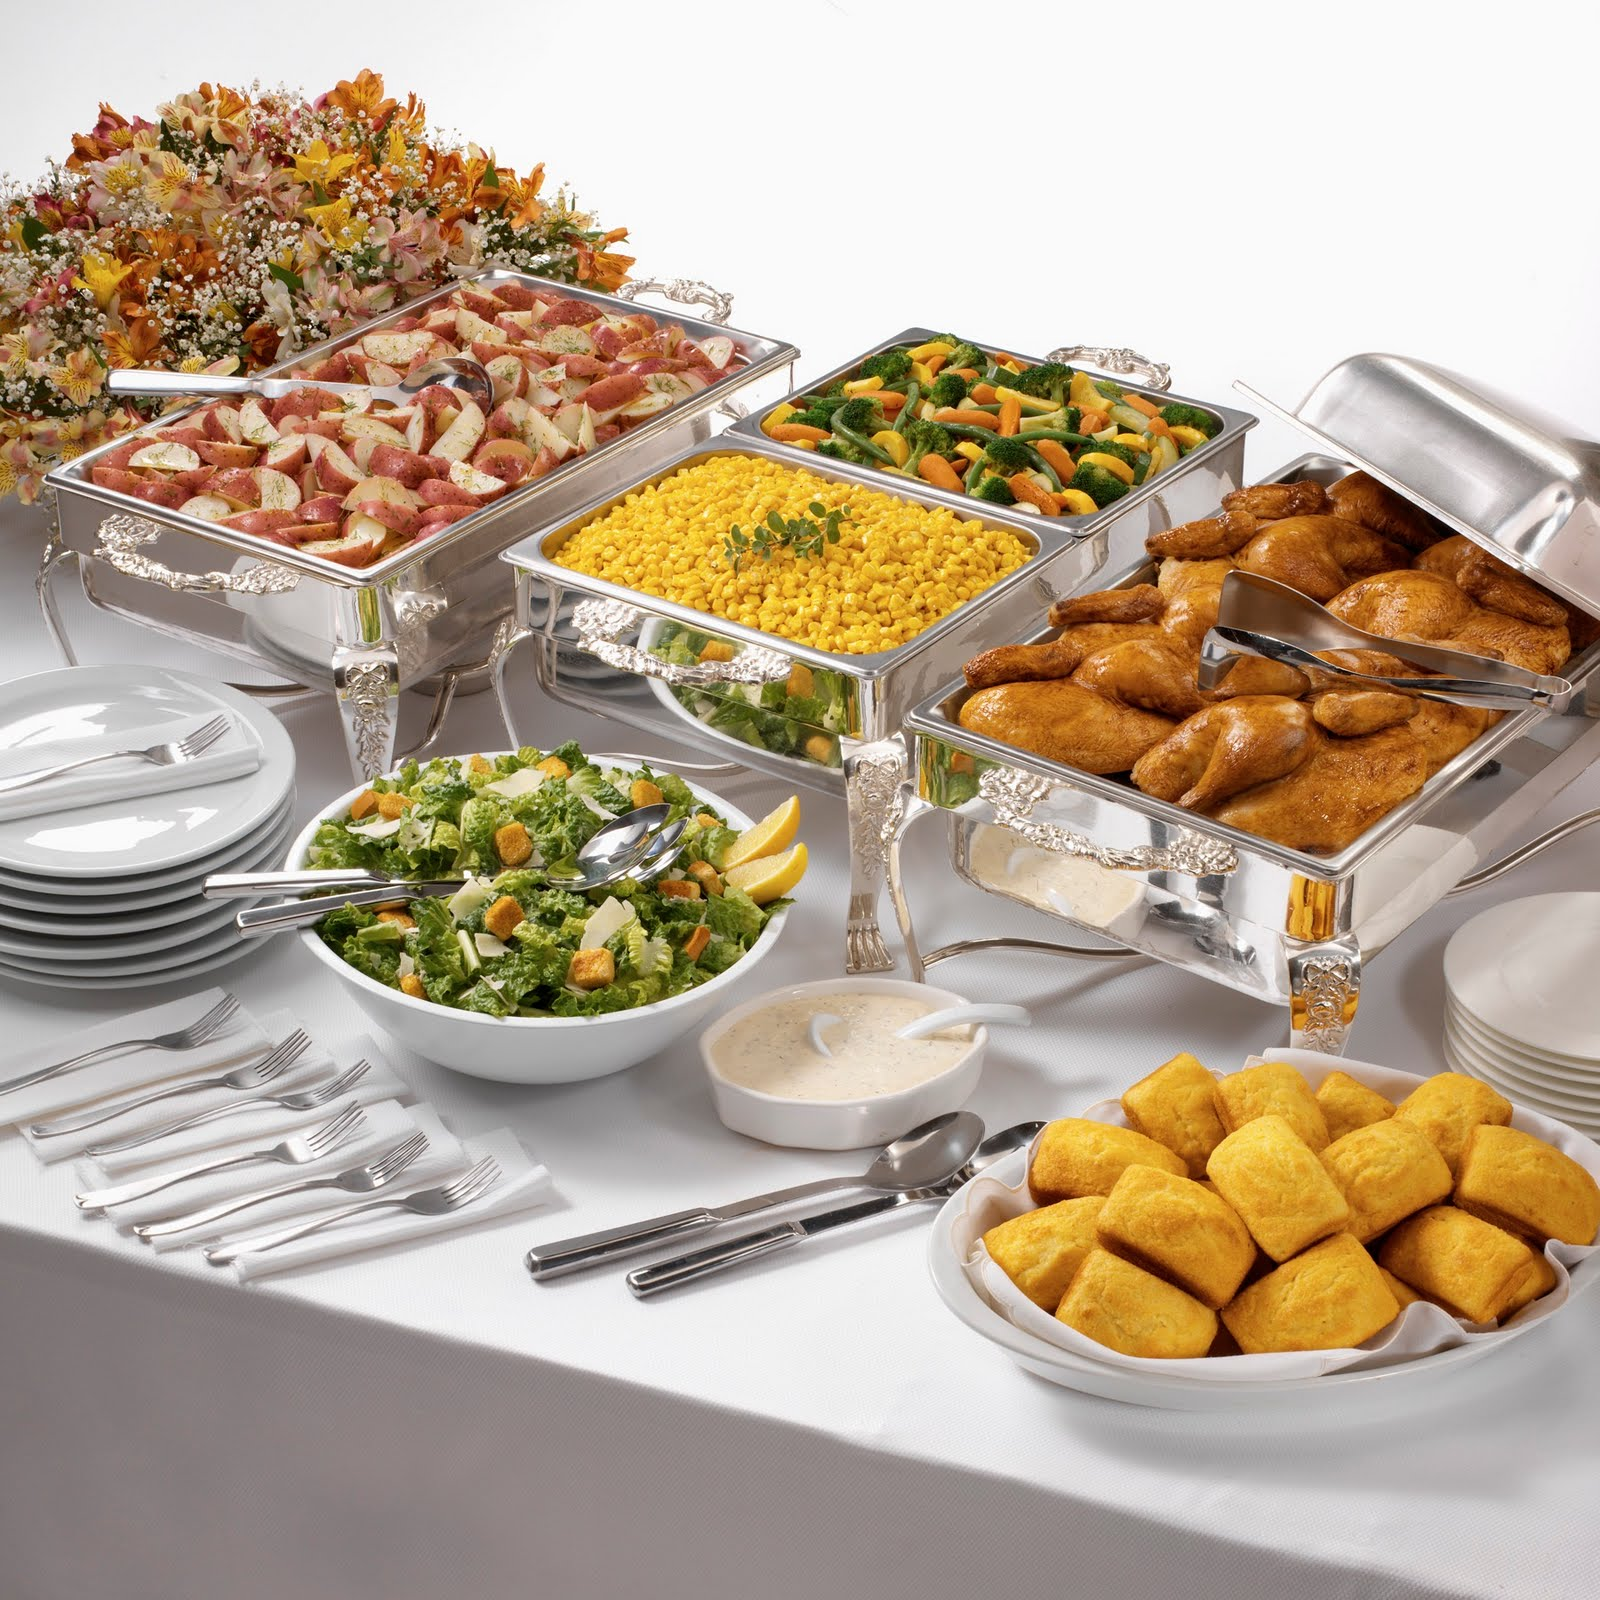 Boston market catering rewards program thrifty jinxy for Asian cuisine catering